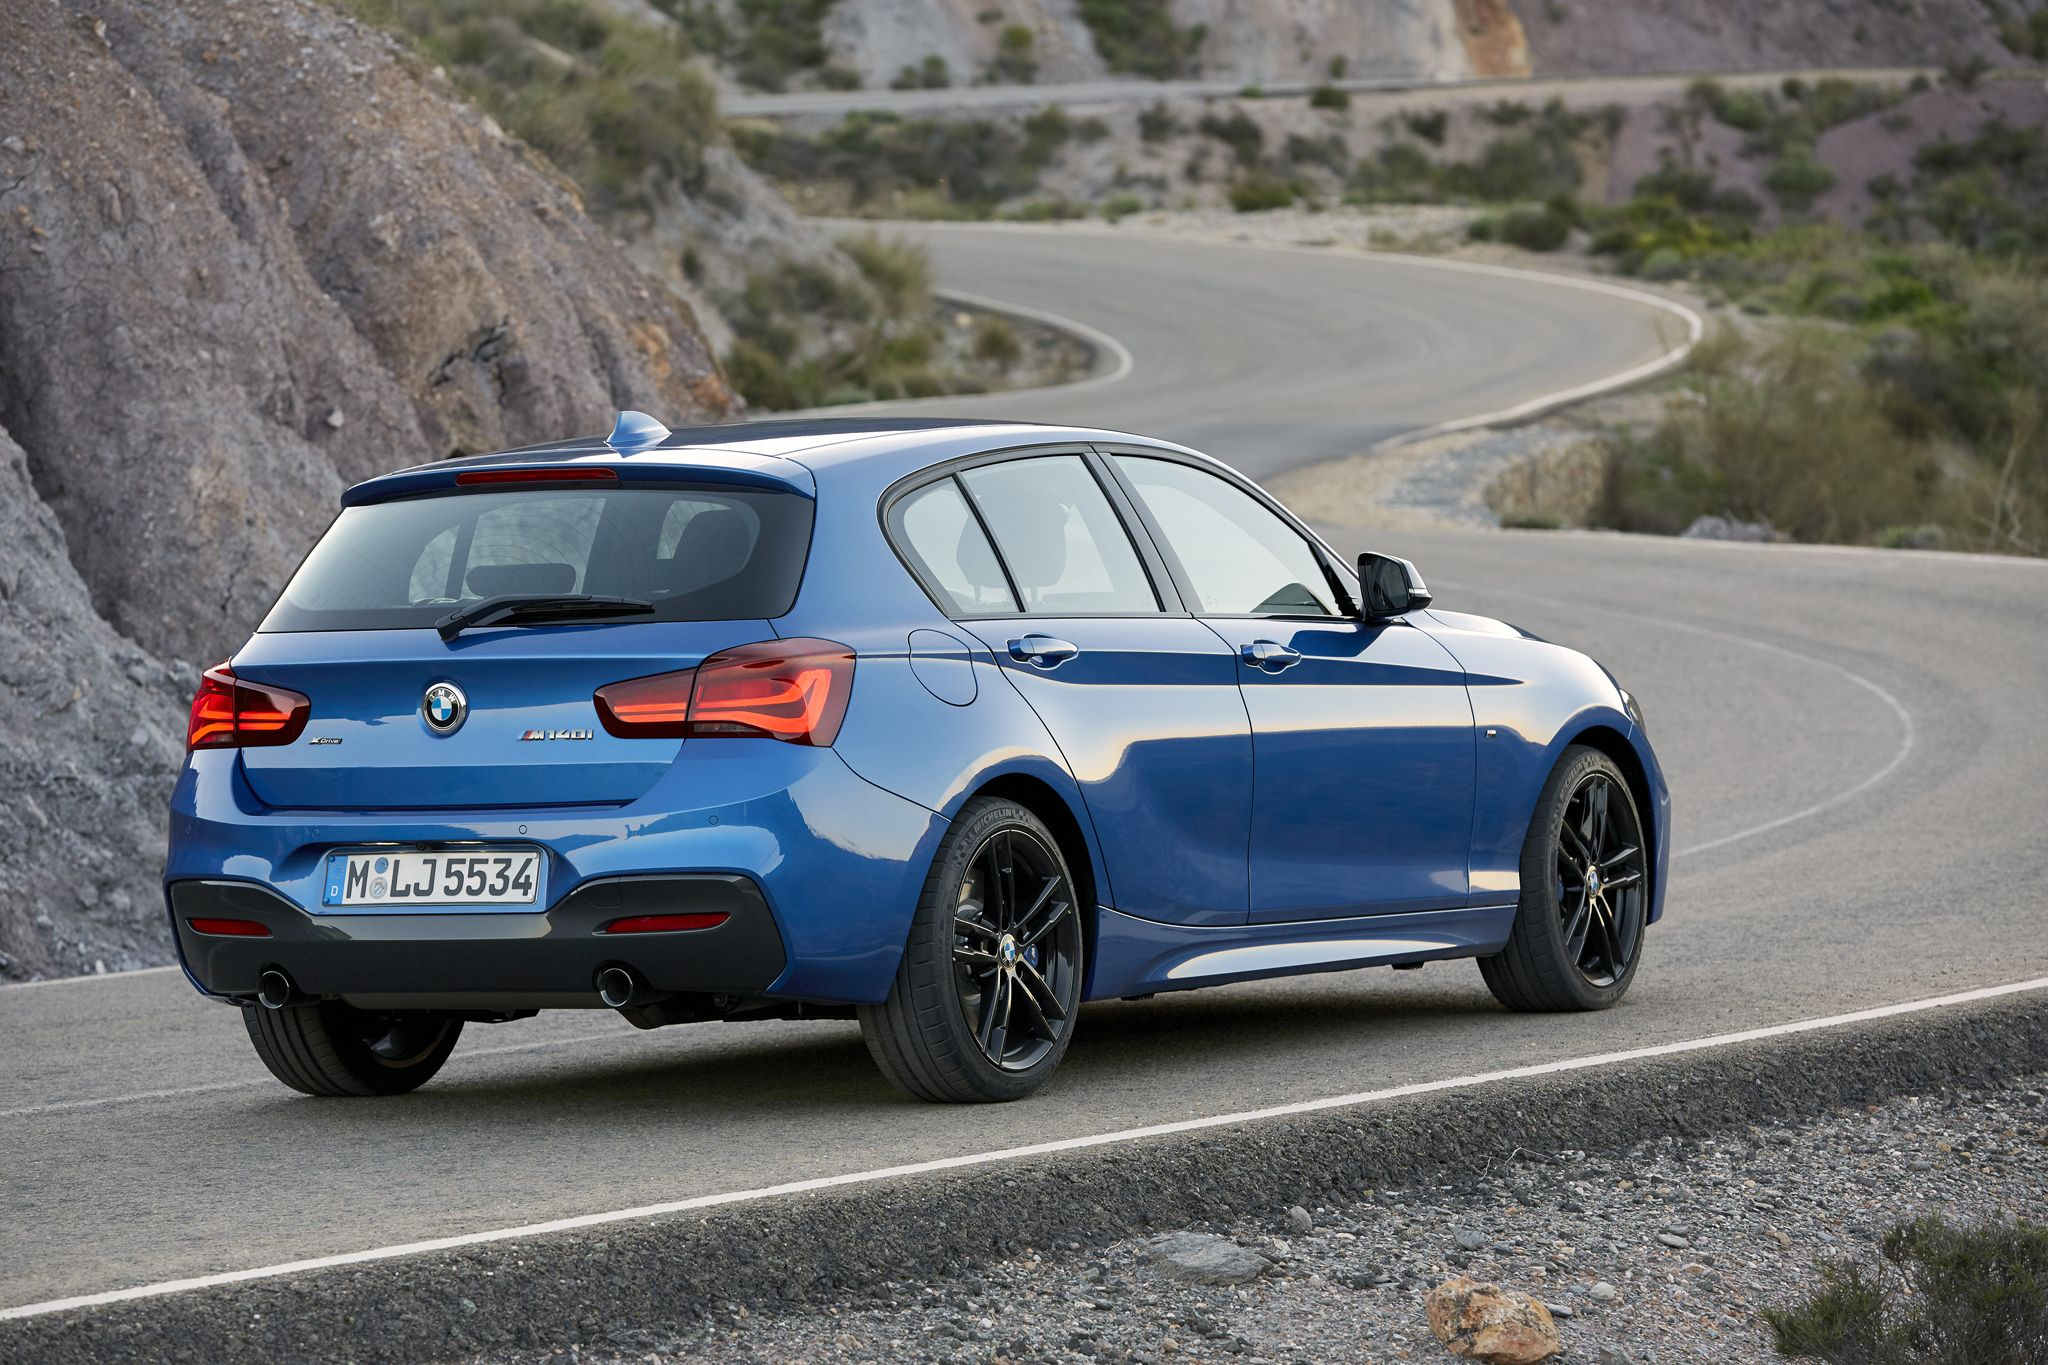 bmw f20 m140i hatchback facelift editionshadow sportline urbanline mpackage xdrive. Black Bedroom Furniture Sets. Home Design Ideas